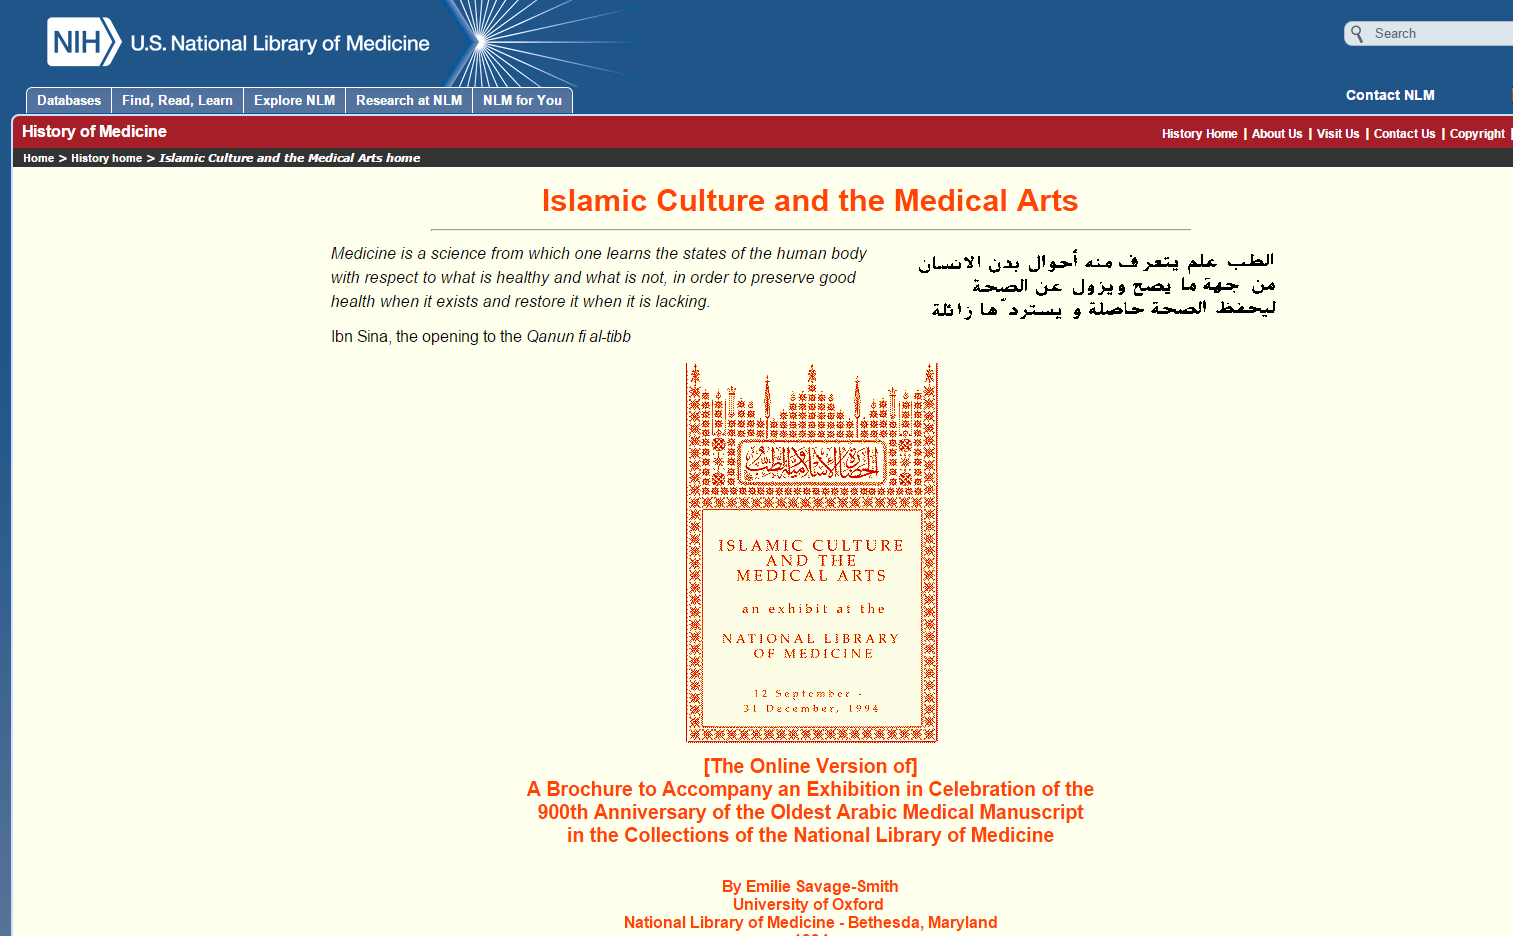 Islamic Culture and the Medical Arts